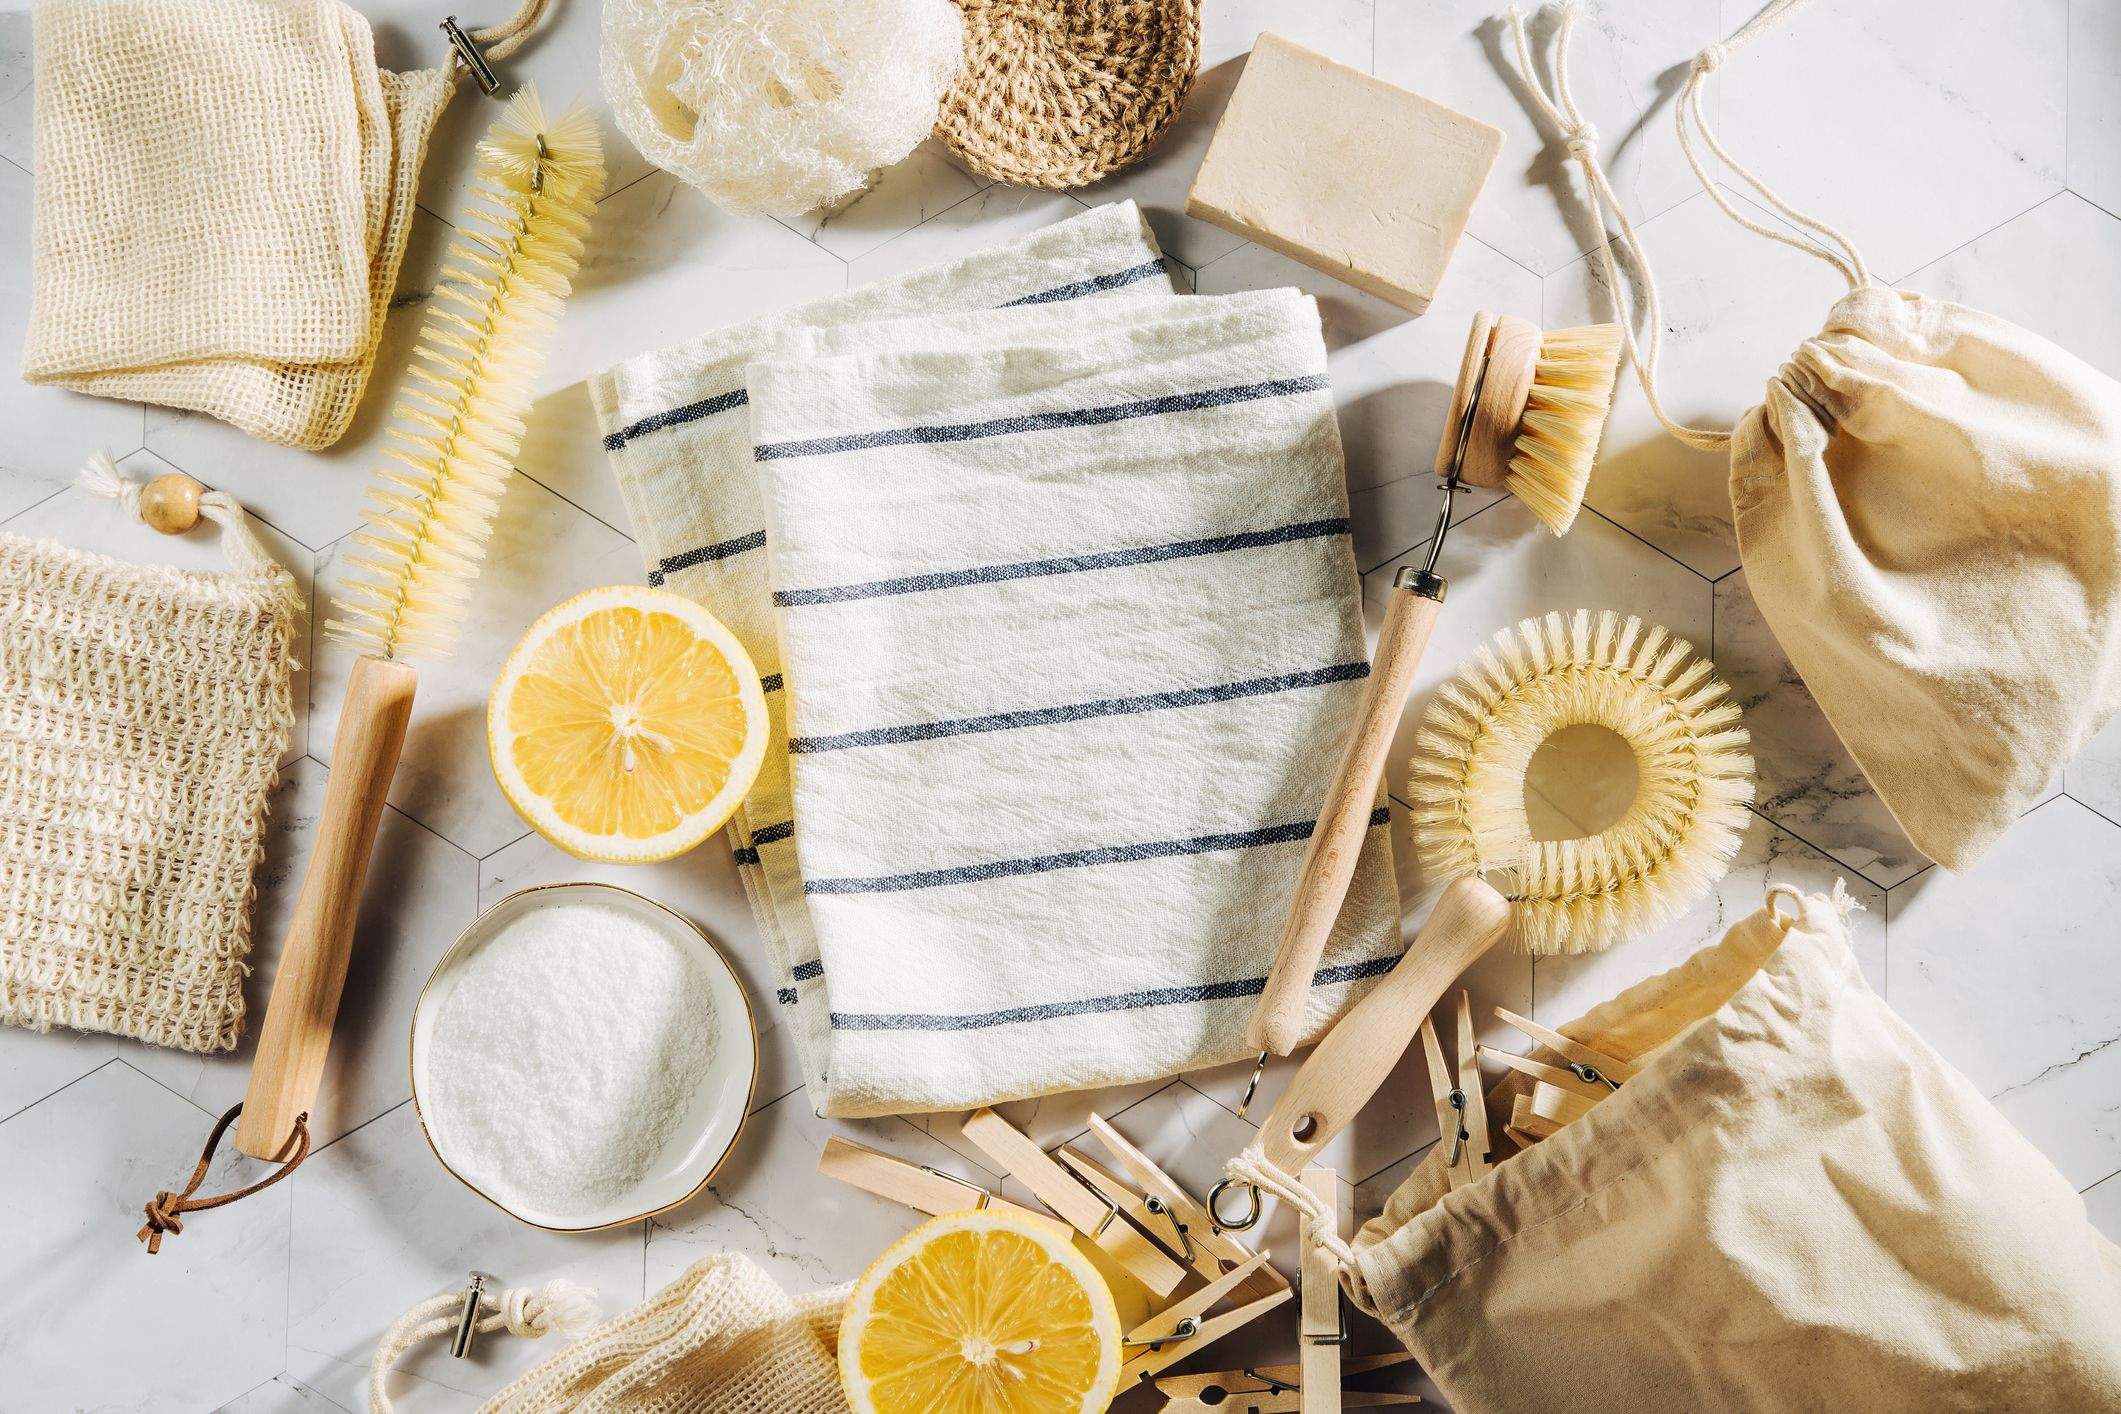 9 ways to switch to plastic-free cleaning